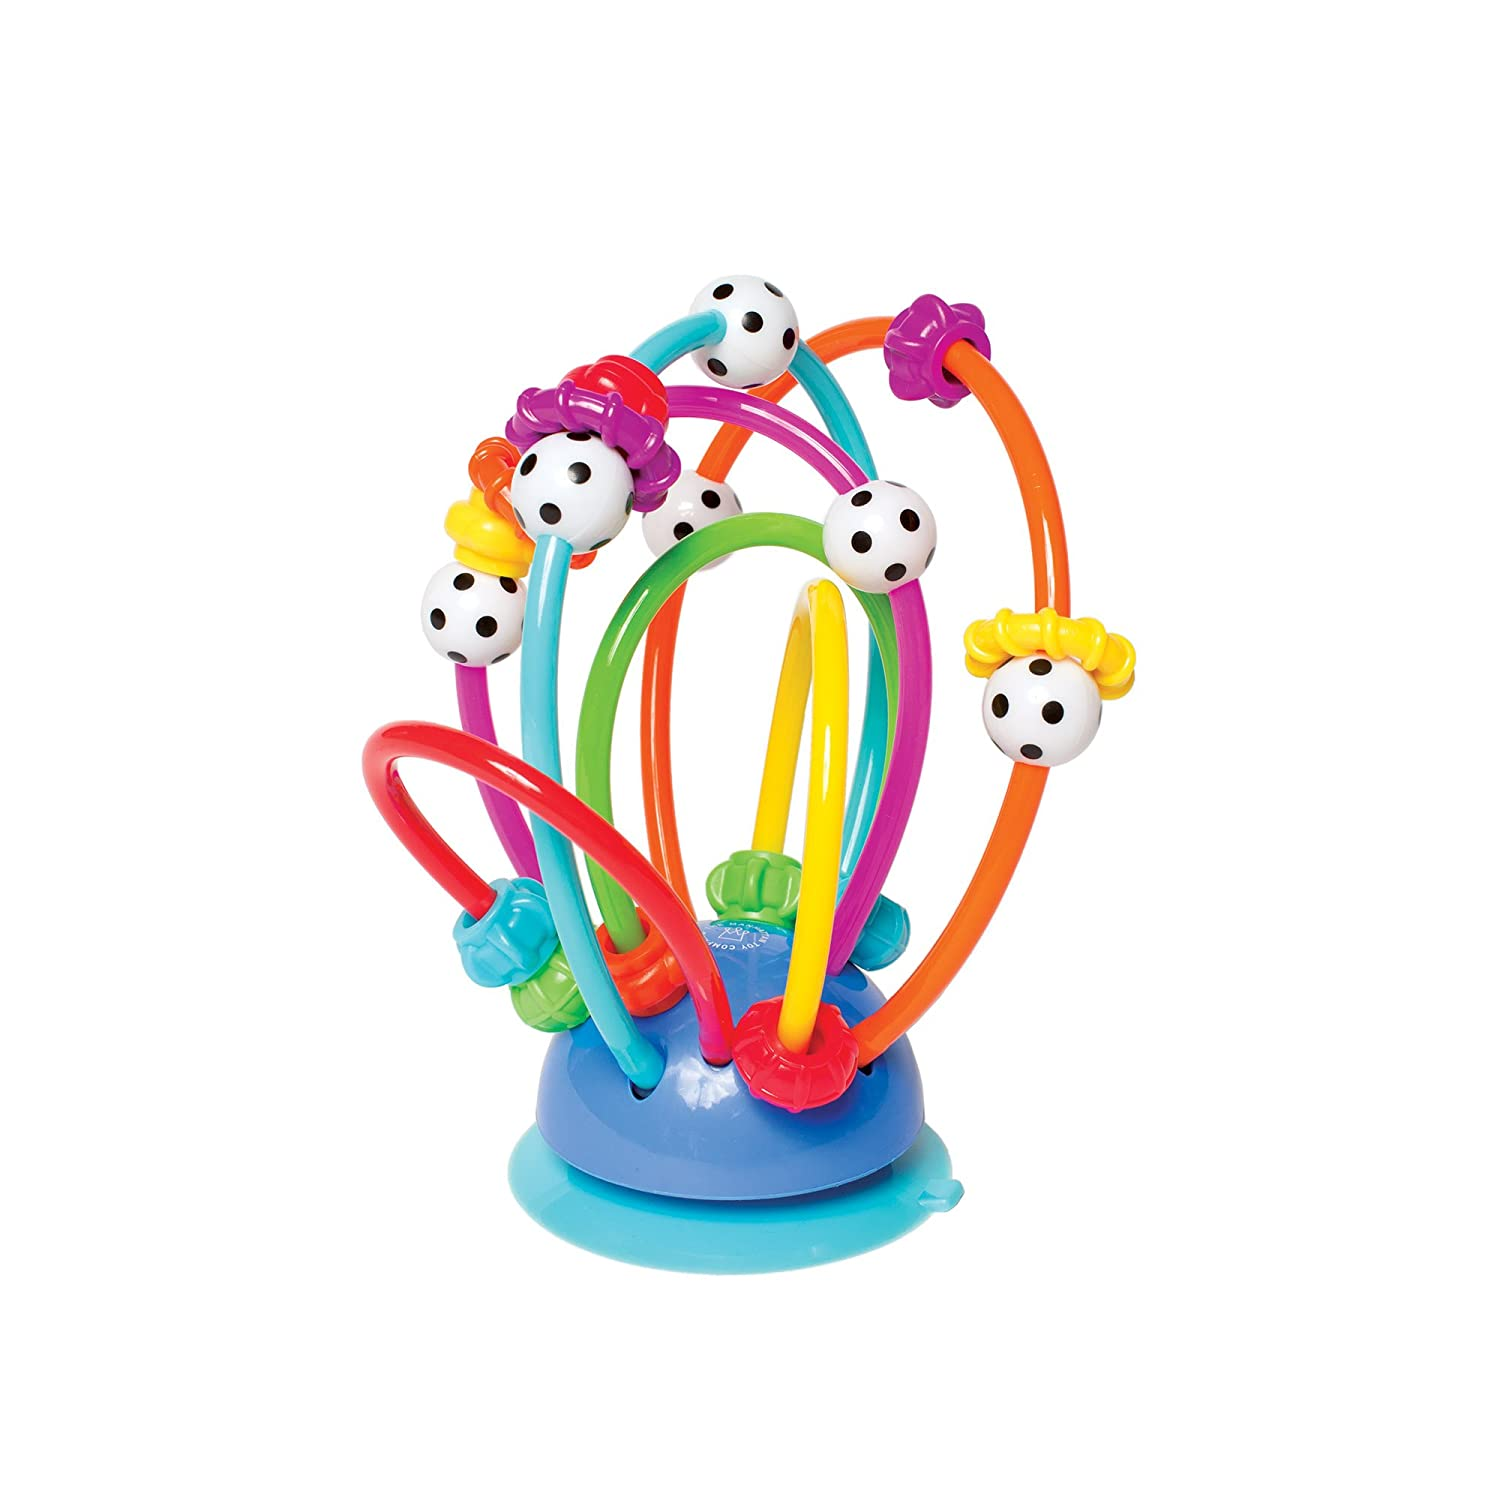 Manhattan Toy Activity Loops Teether & Early Development Baby Toy 215210